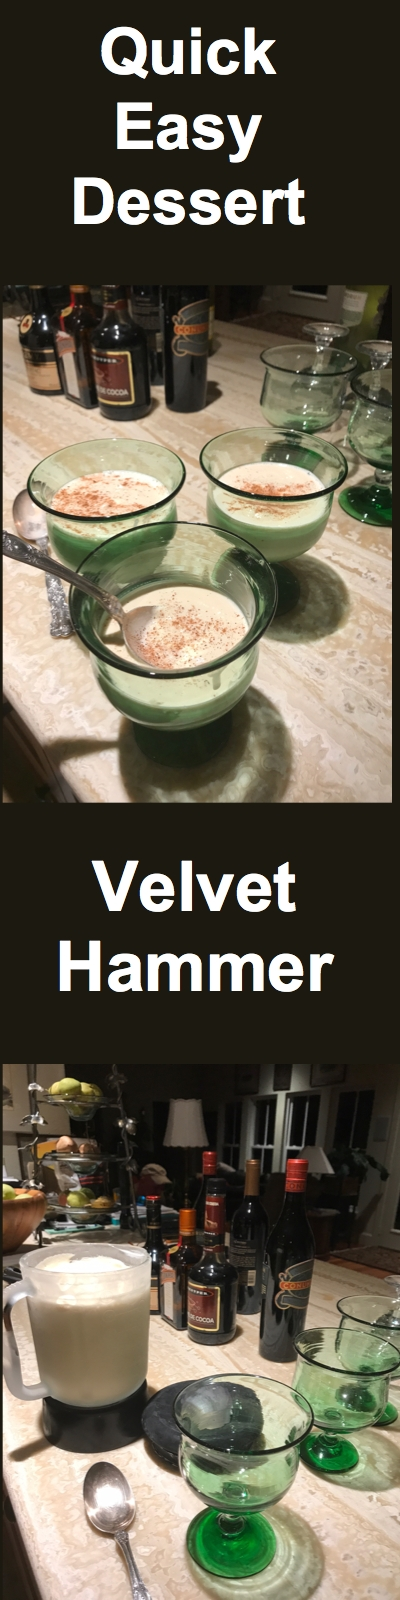 The Best Velvet Hammer(Fabulous Ice Cream Dessert!)